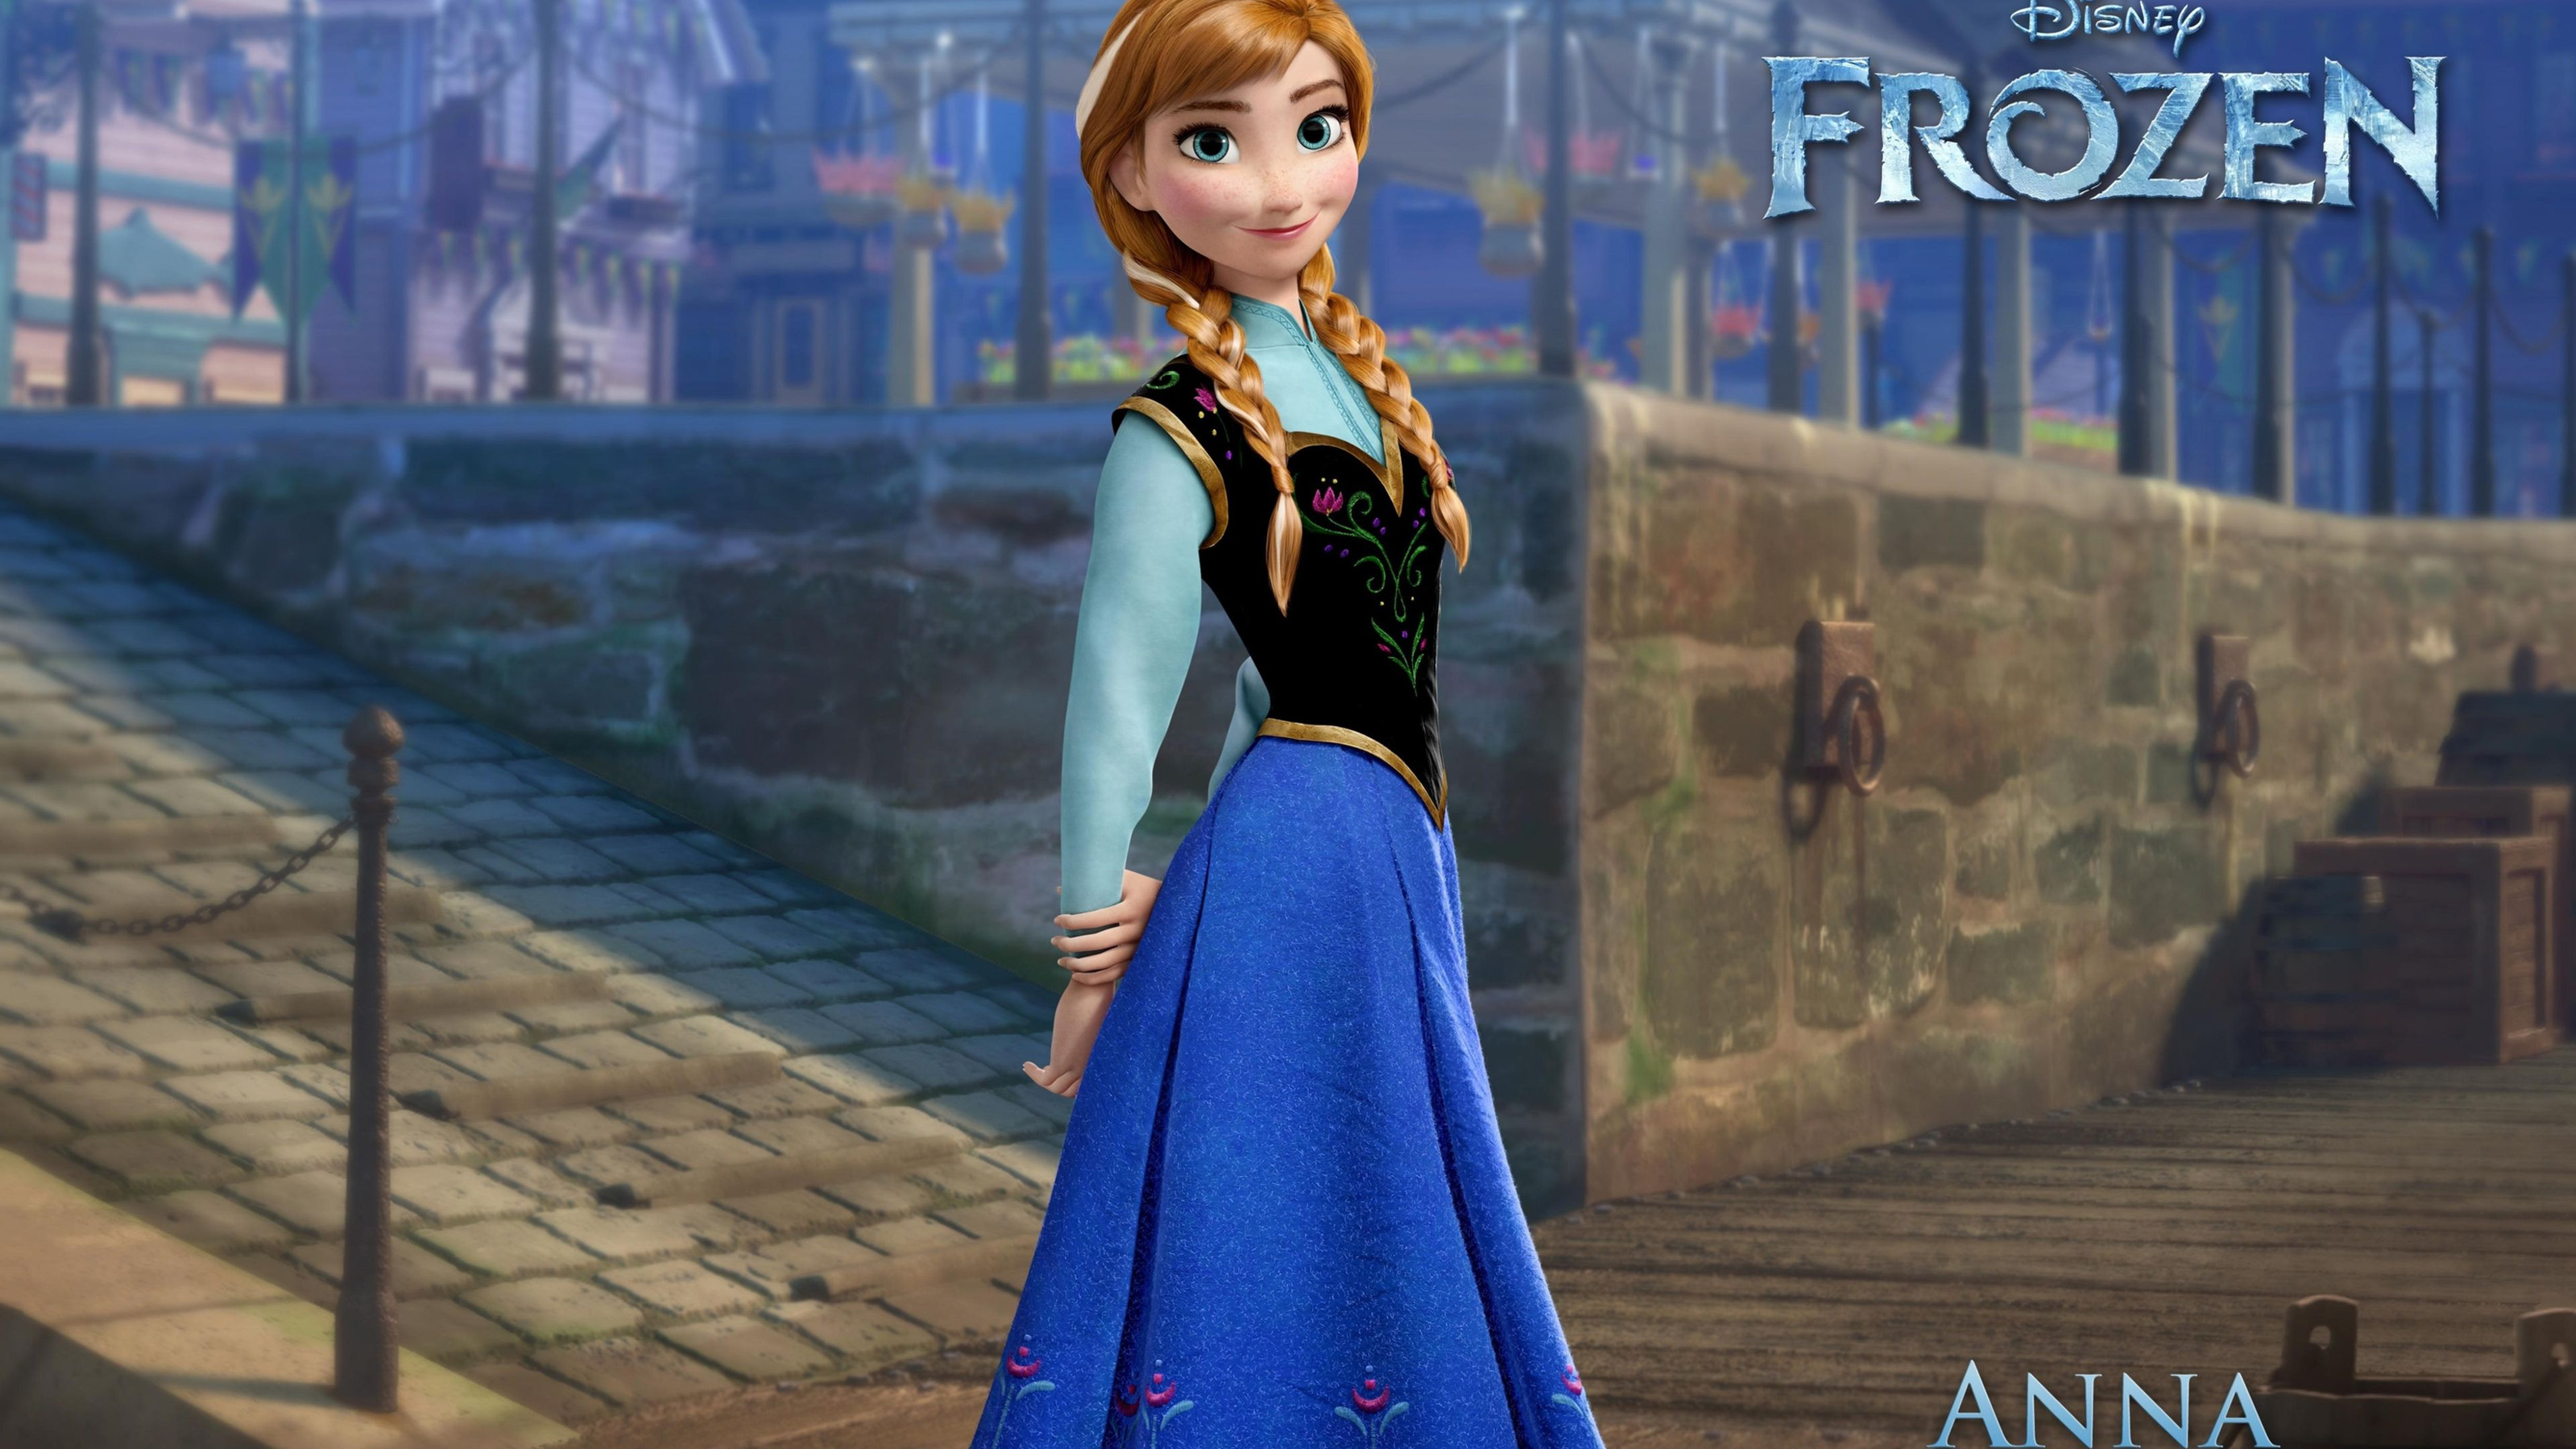 3840x2160 Frozen Anna, HD Movies, 4k Wallpapers, Images, Backgrounds, Photos ...